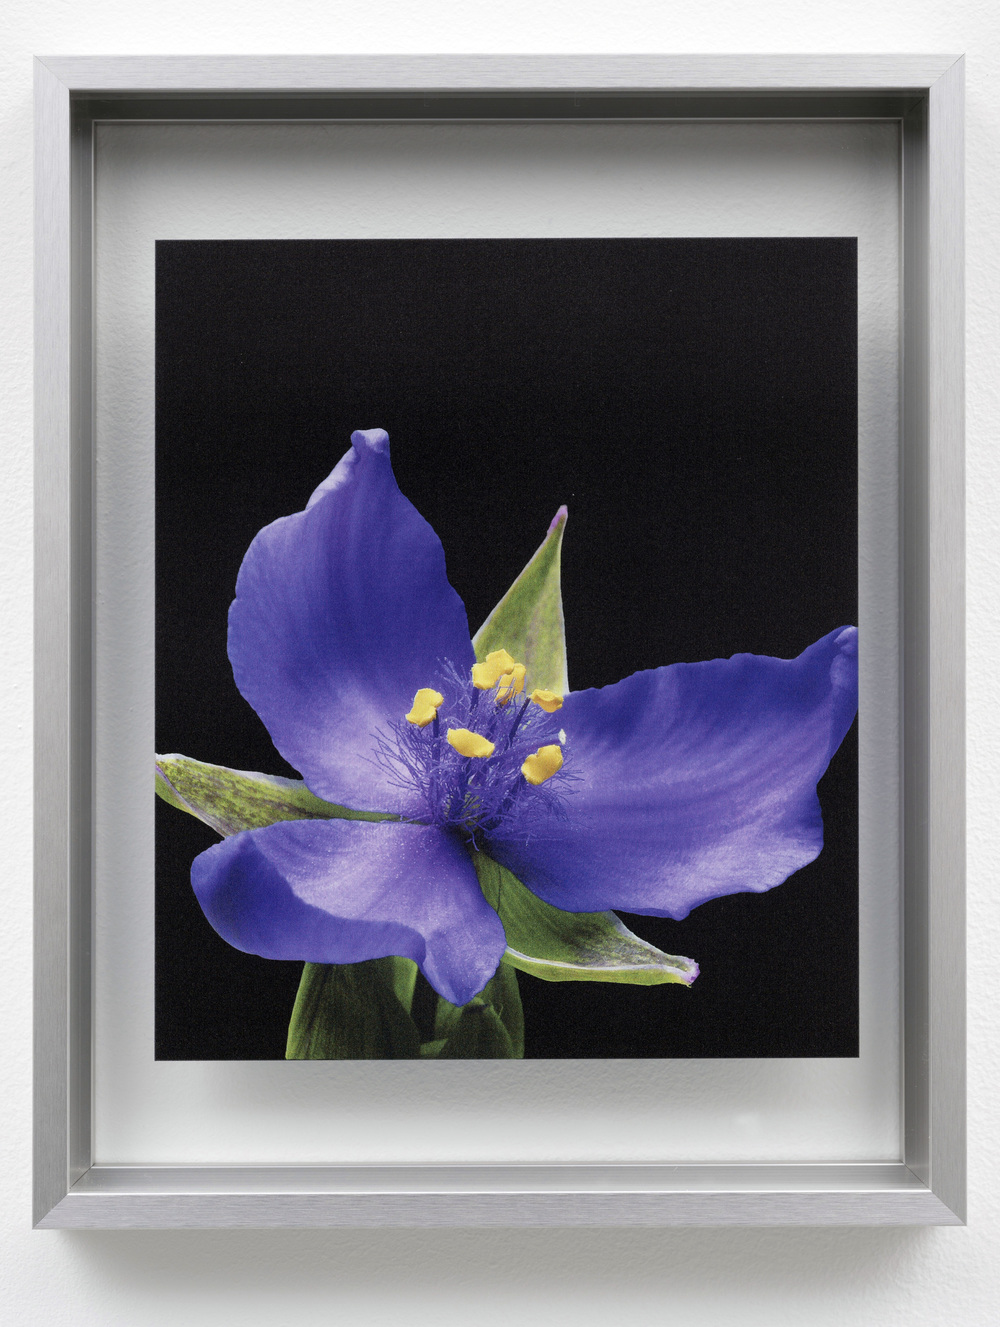 Spiderwort (Tradescantia) from the to Threptikon series, 2014. Courtesy of James Caudell, Florida Native Plants Nursery